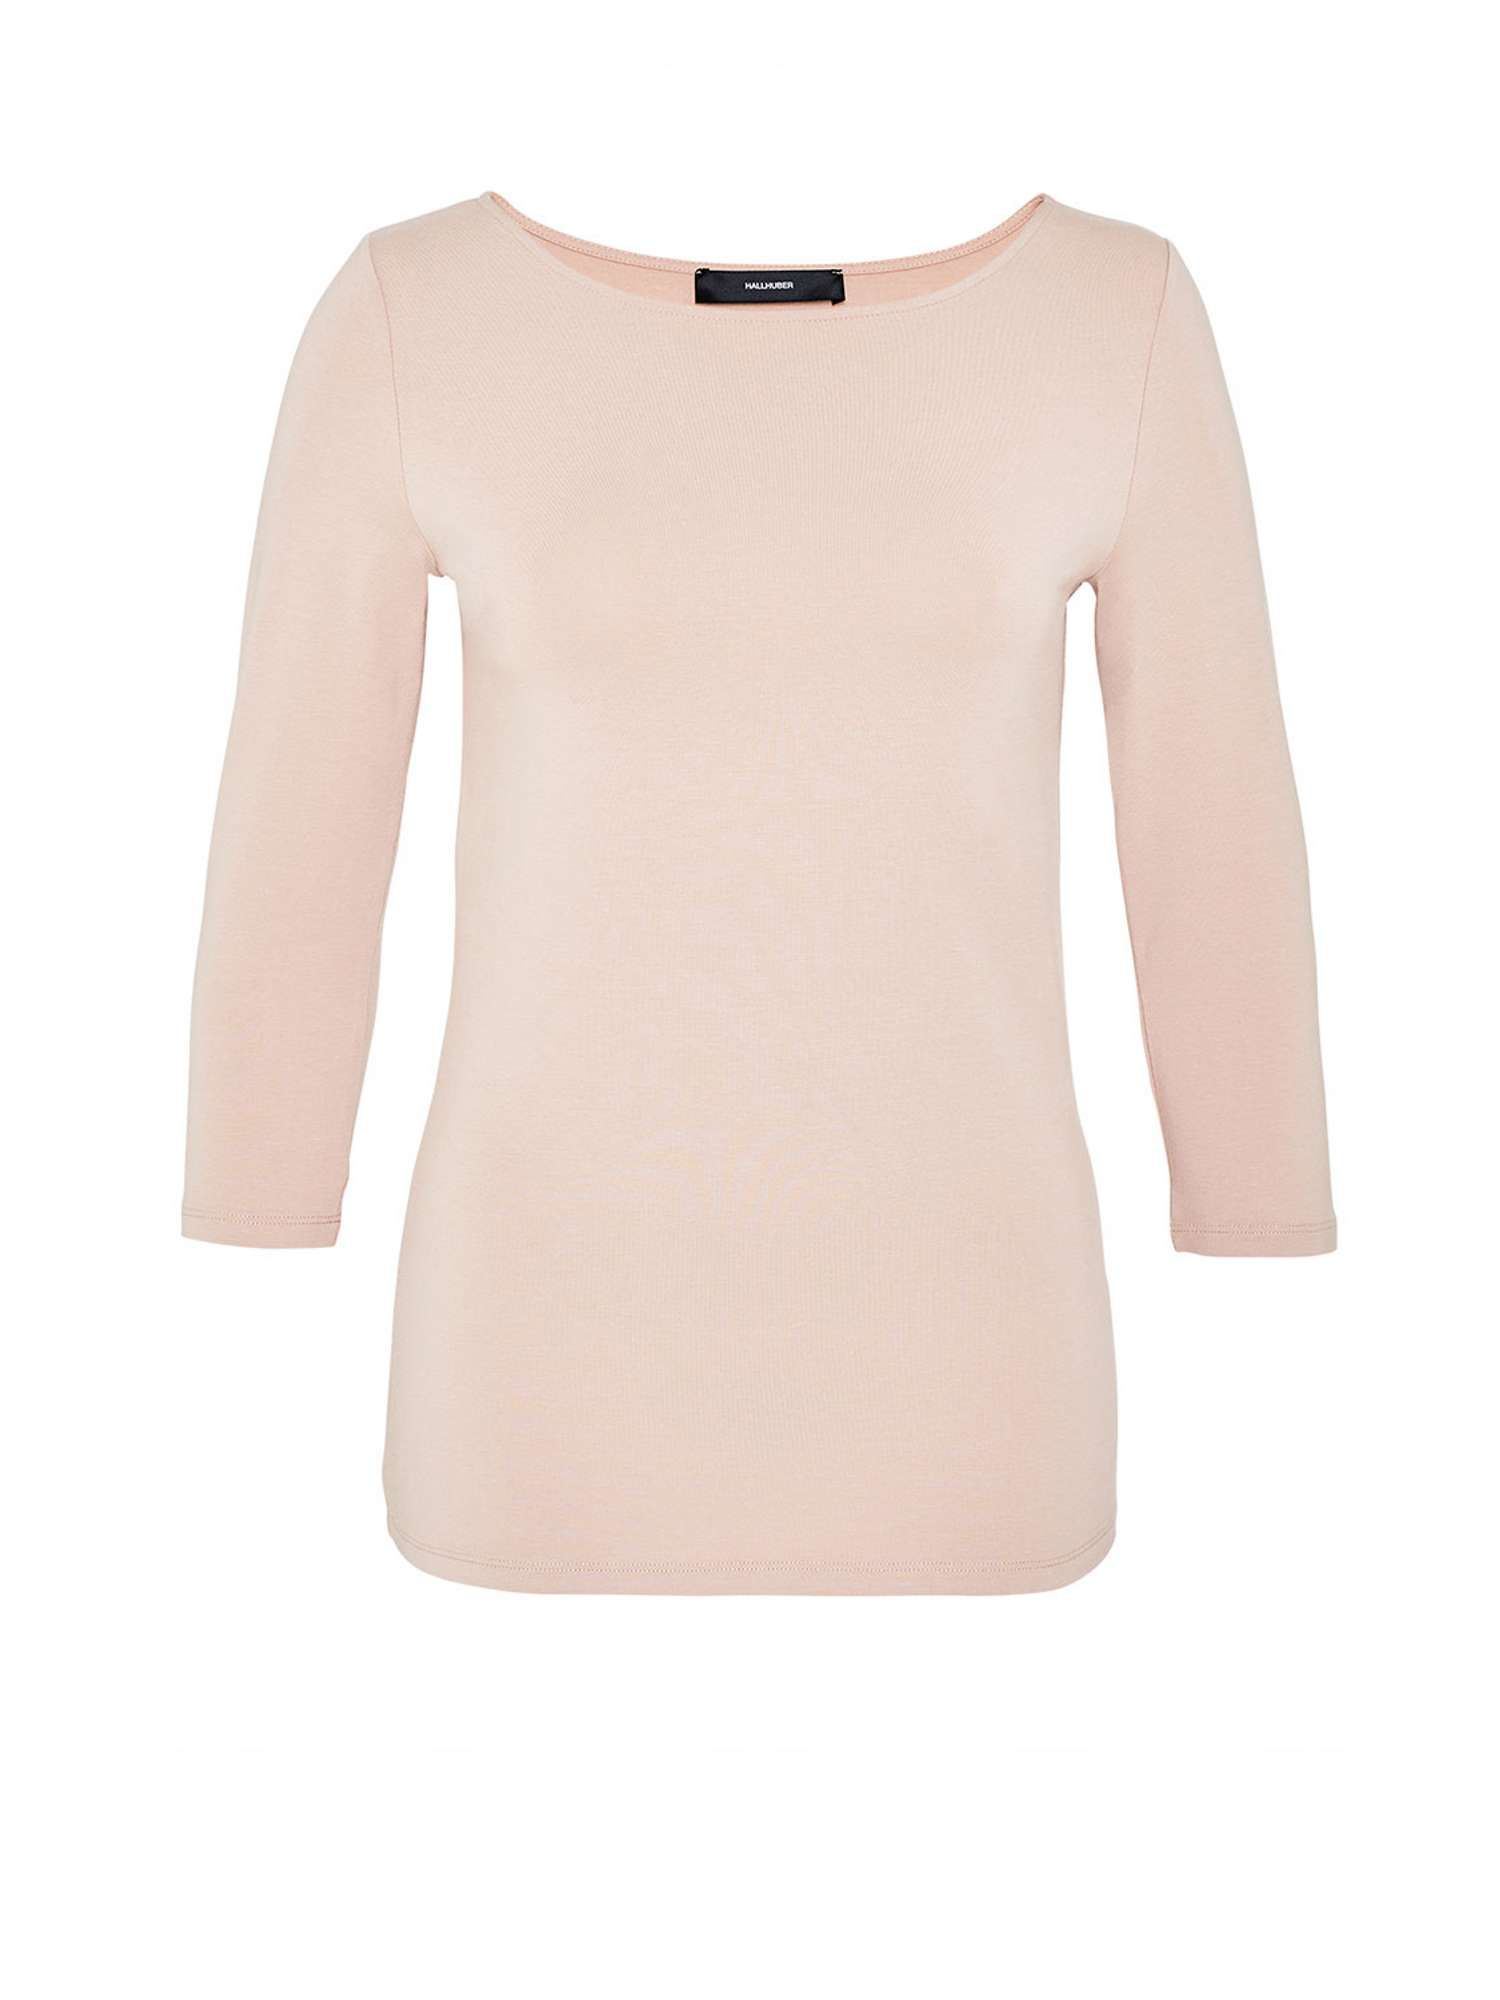 ce6bfaf7b7c624 Buy your Hallhuber Boat Neck Top online now at House of Fraser. Why not Buy  and Collect in-store?